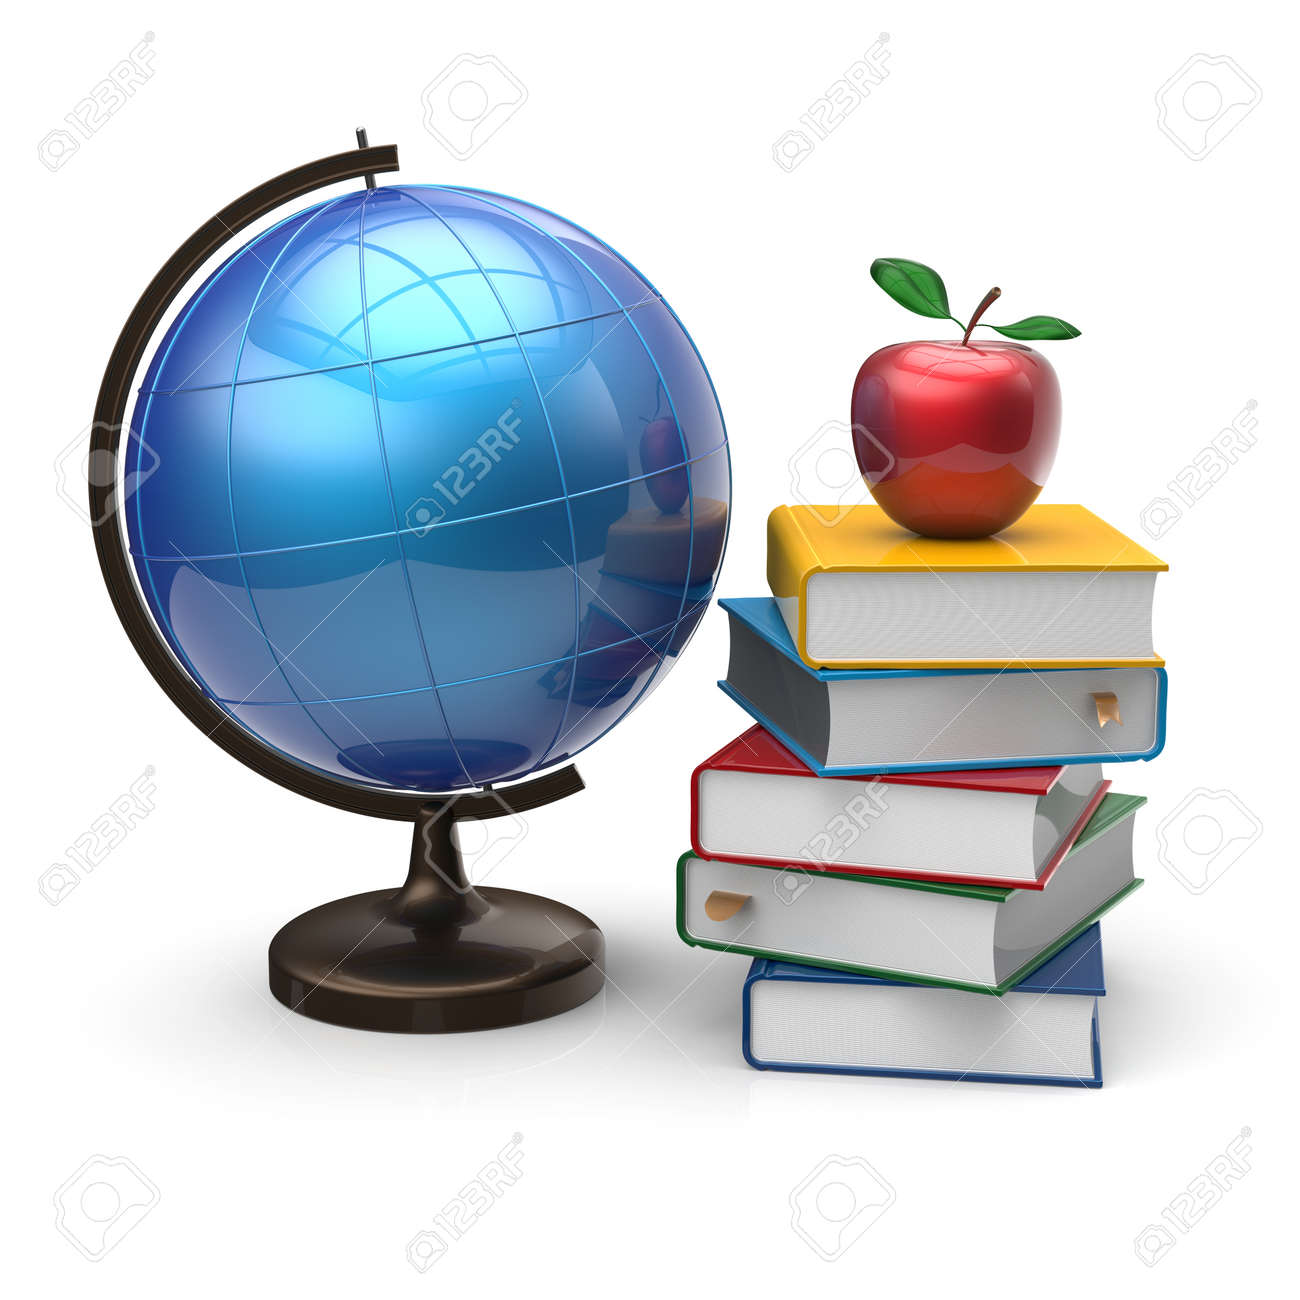 books globe and apple blank international global geography wisdom books globe and apple blank international global geography wisdom literature icon study knowledge symbol concept